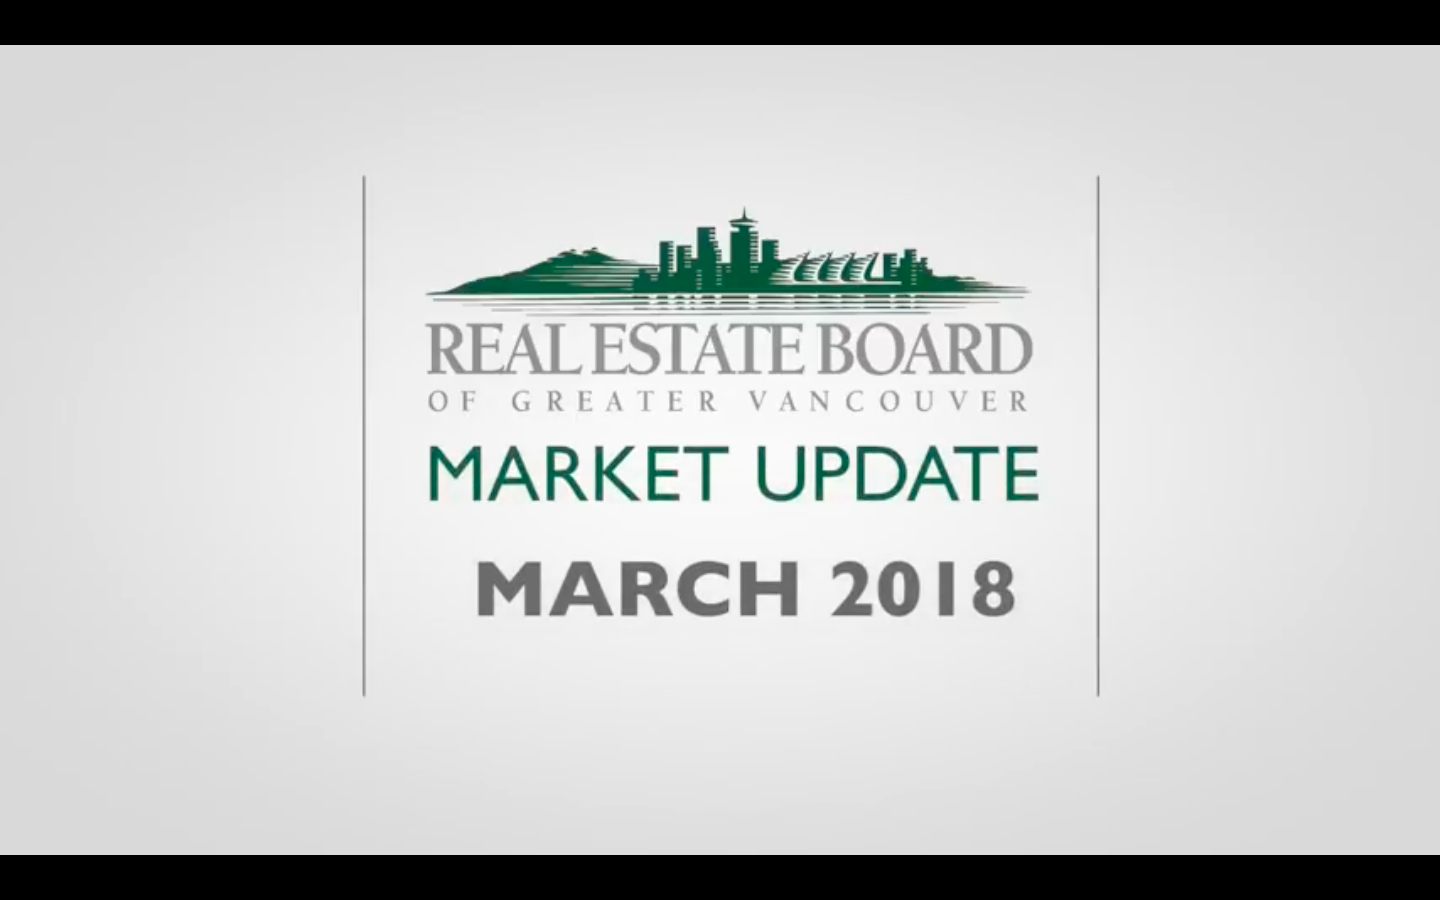 REBGV March 2018 Market Update Video